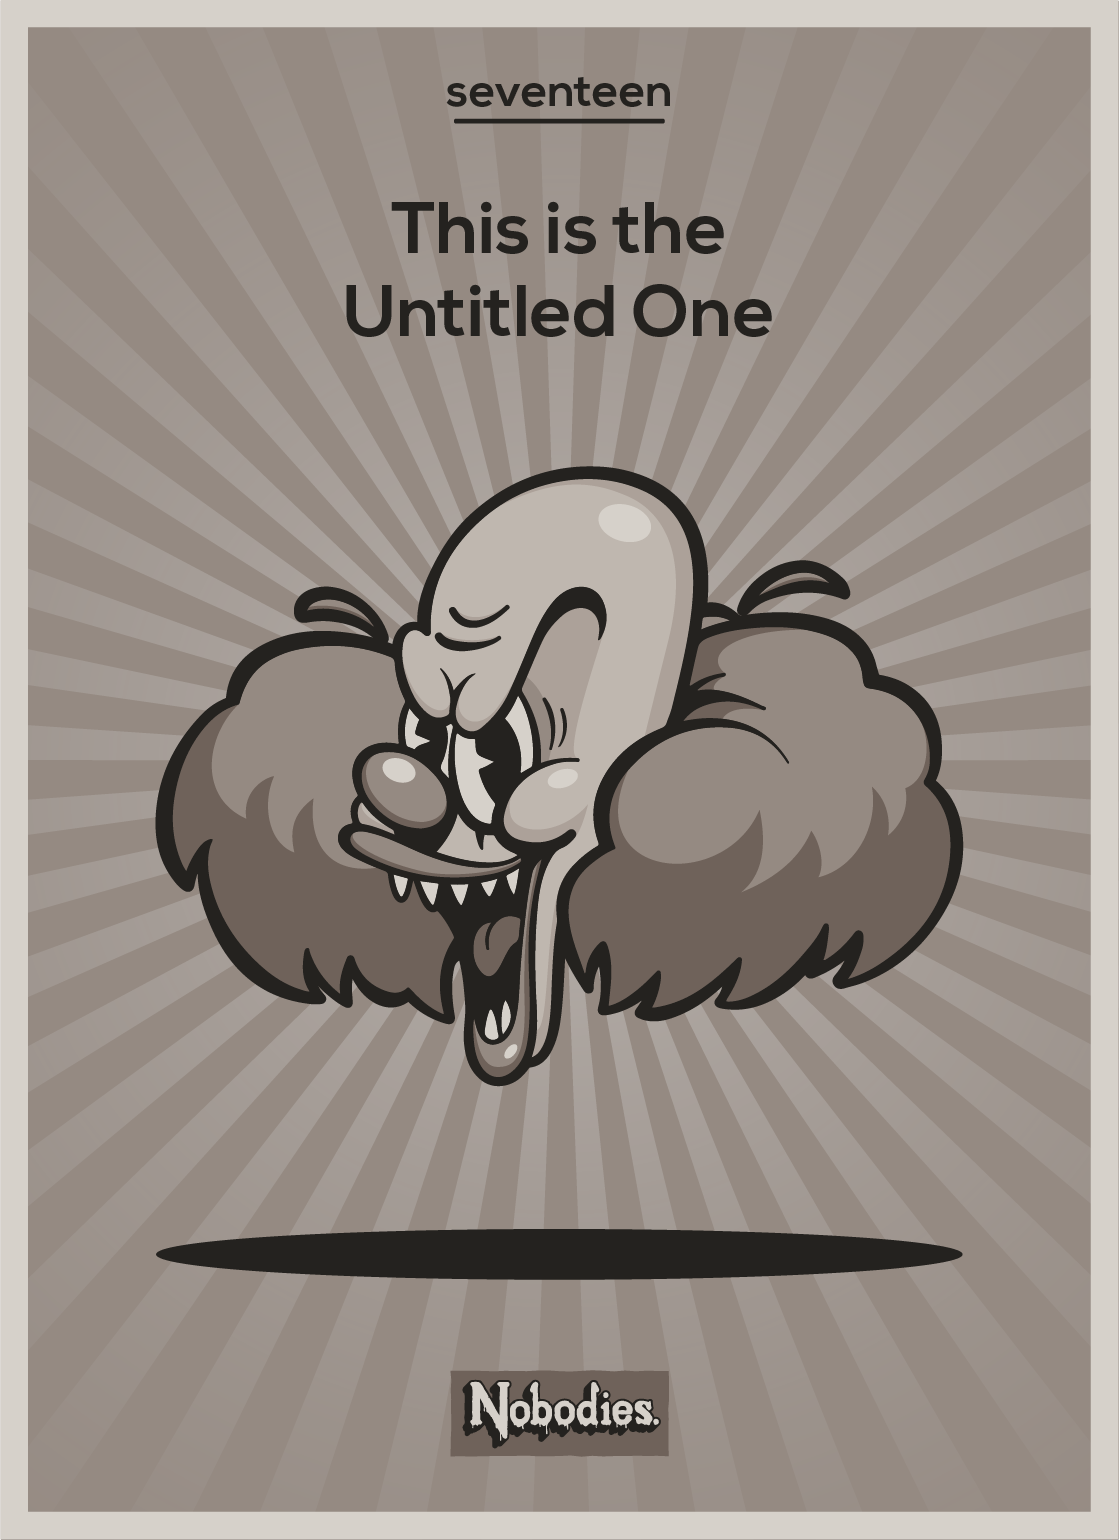 017Pennywise90Card.png